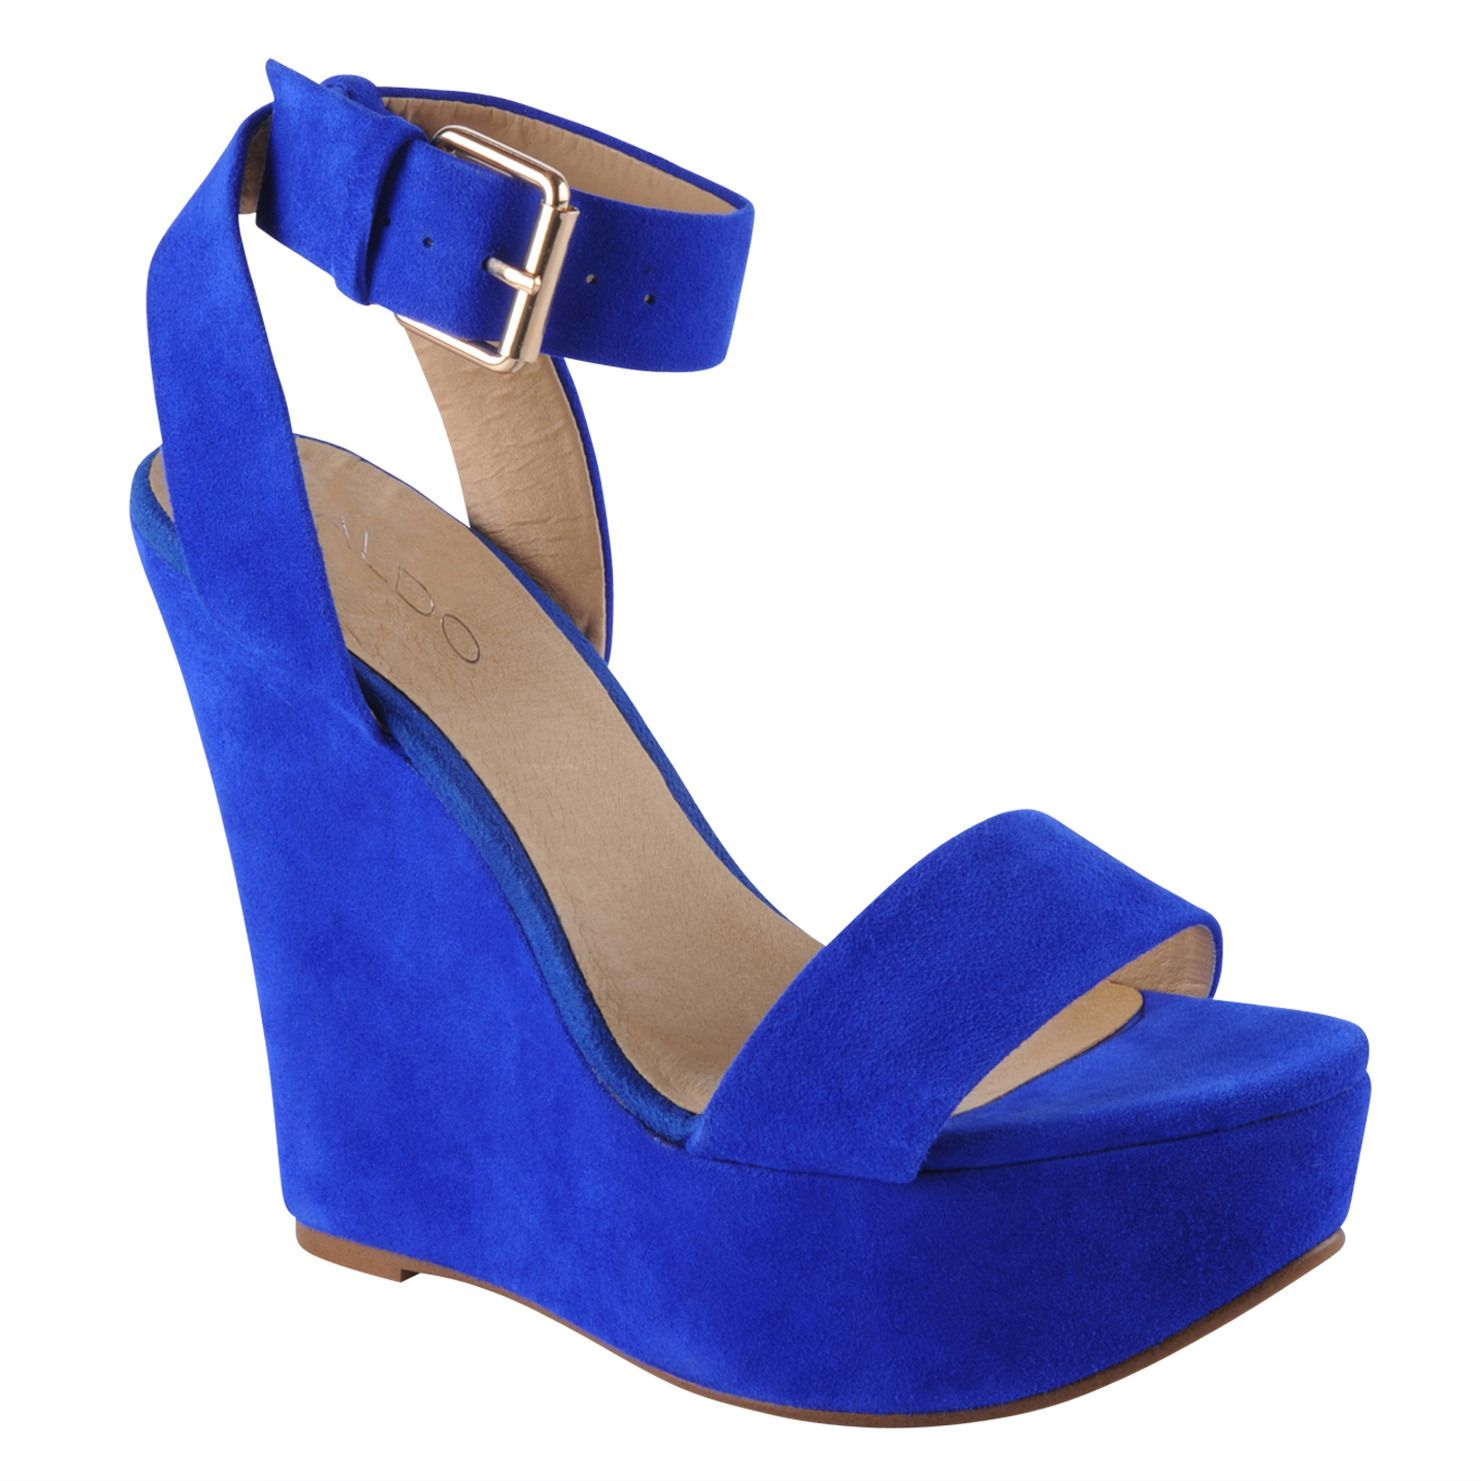 Aldo Blue Wedge Love This And Ju Lee And The Fact That